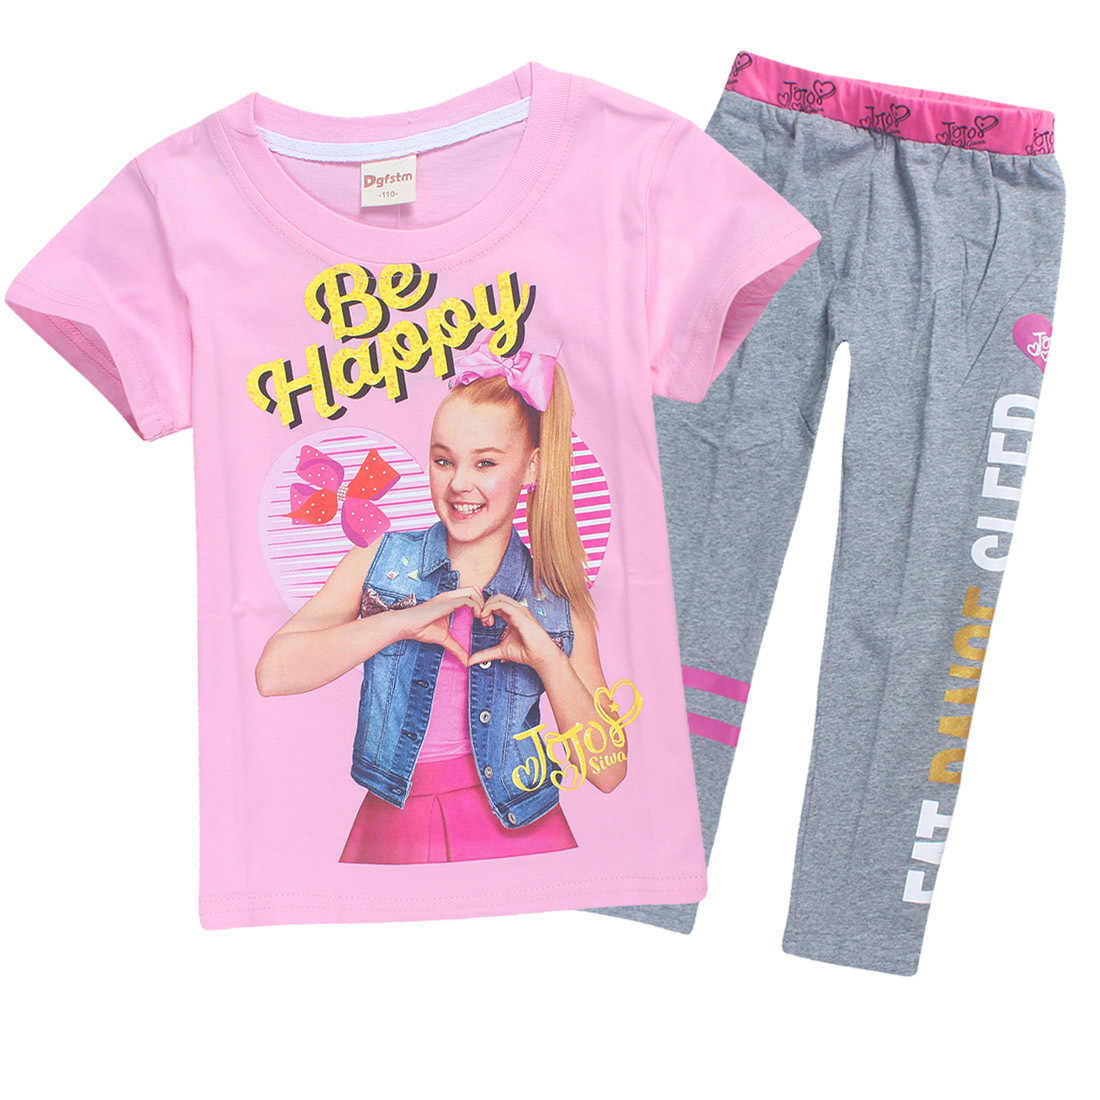 60177a8943 Summer Jojo Siwa Pure Cotton Children Tracksuits for Girls Baby Girl Sport  Suit Costume Set Tops Pants Bobo Choses Teen Clothes